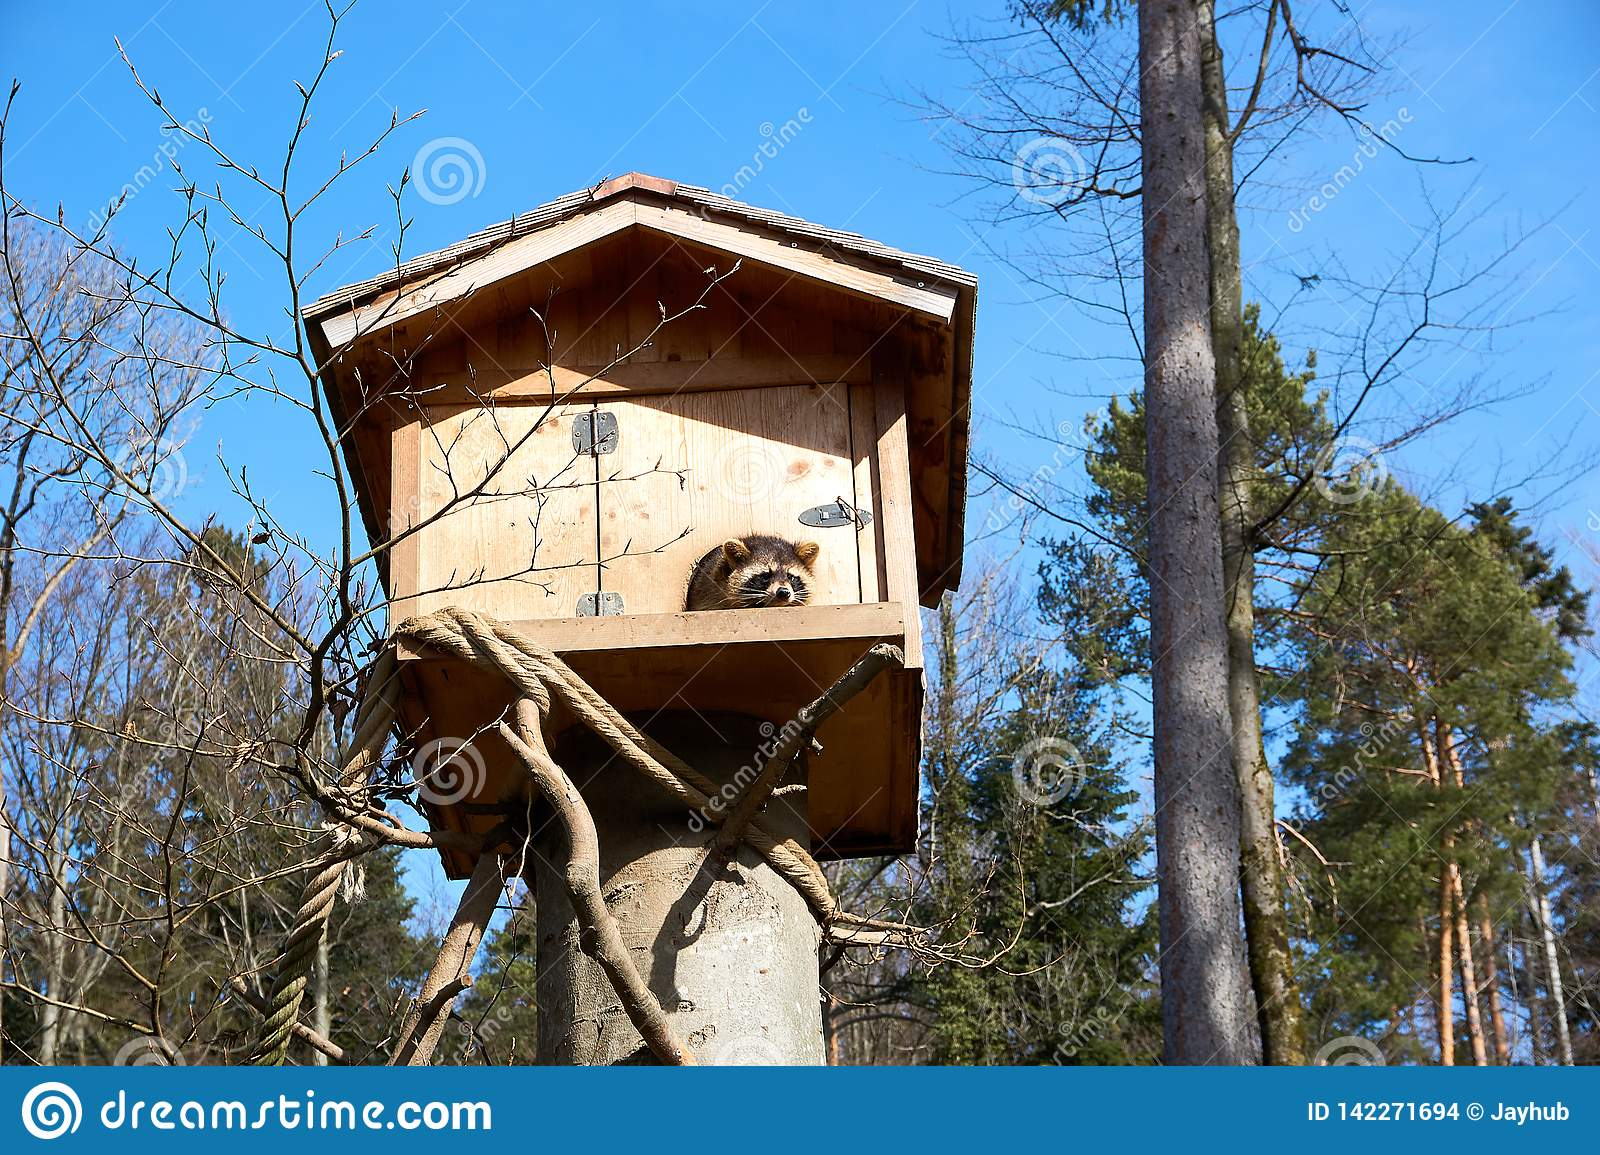 Racoon in his wooden house in europe